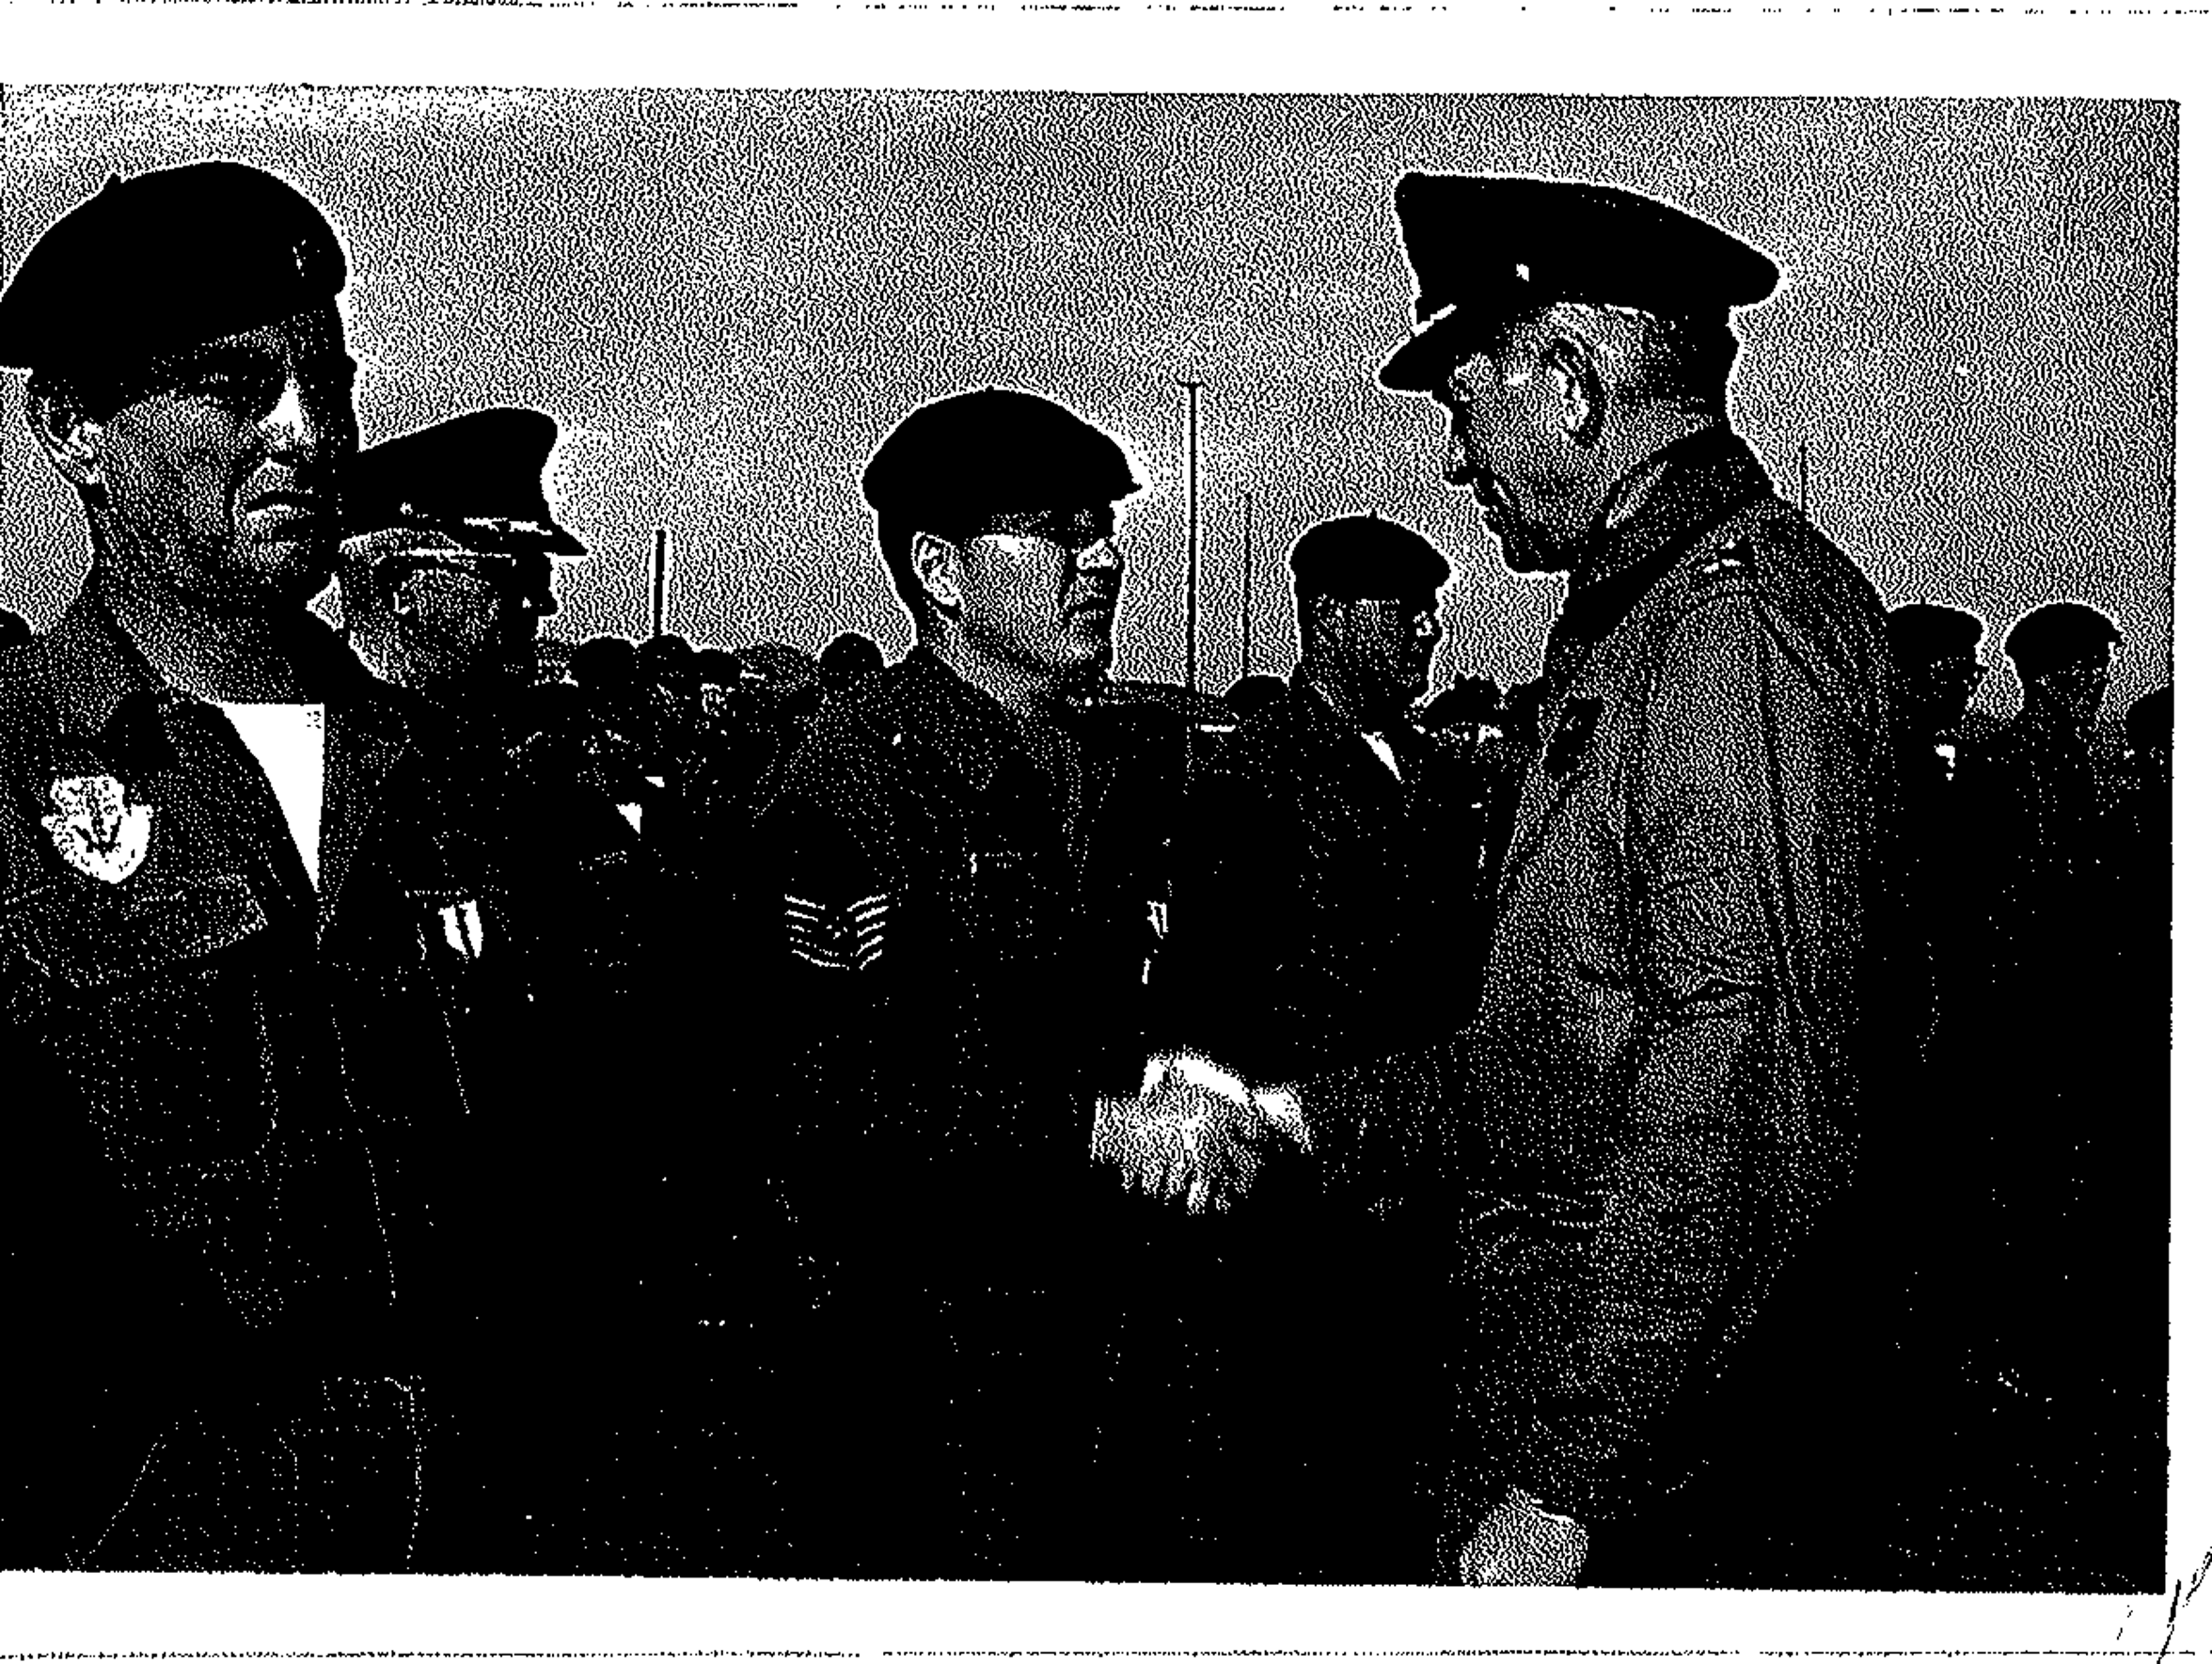 Victor Skaar, center, shakes hands with an Air Force